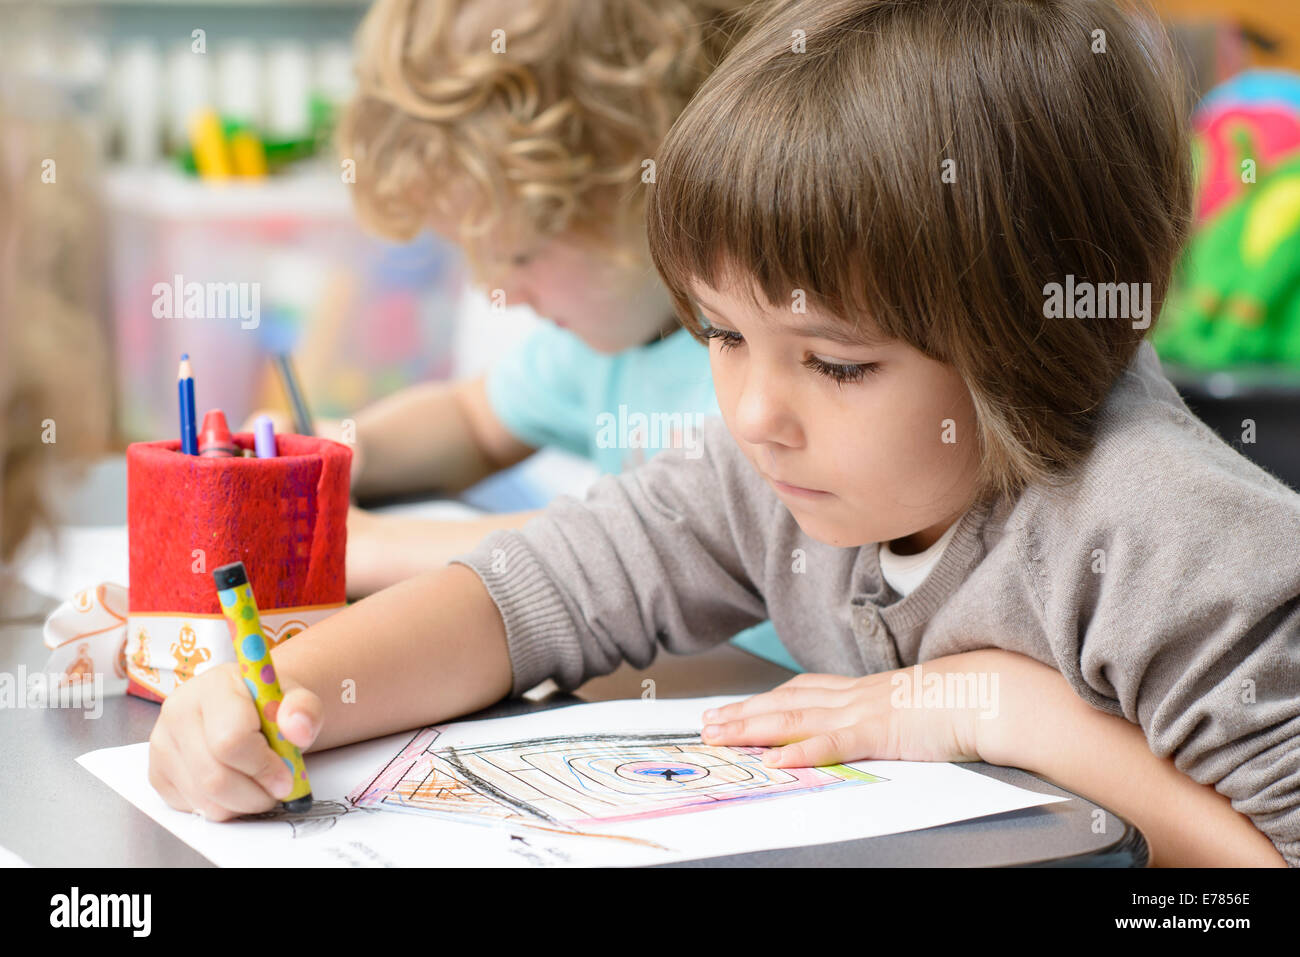 Two kids drawing at kindergarten - Stock Image